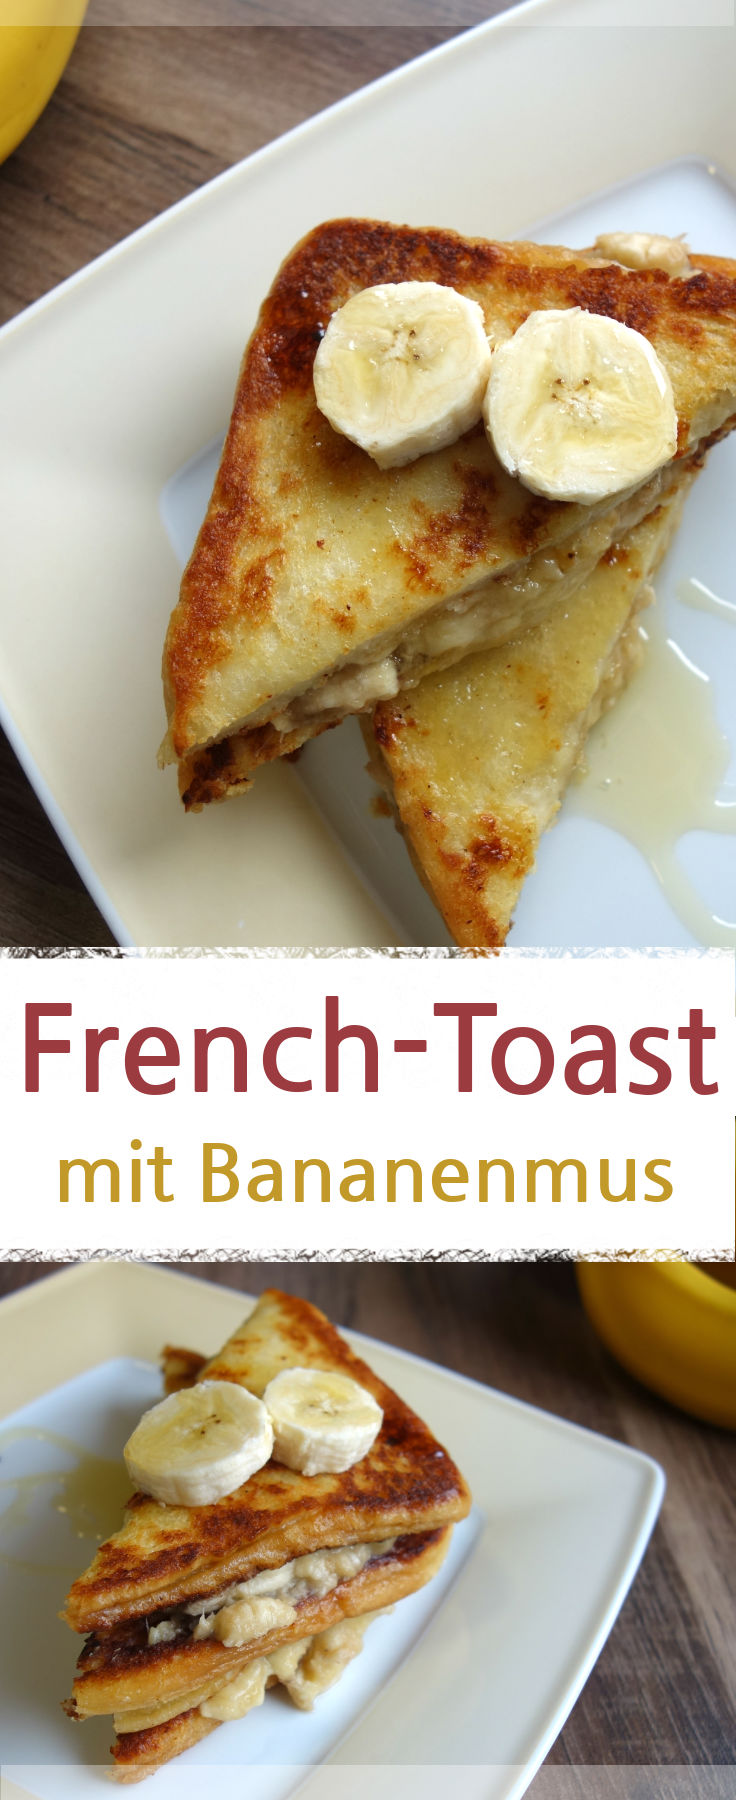 french-toast-bananenmus-wl.jpg